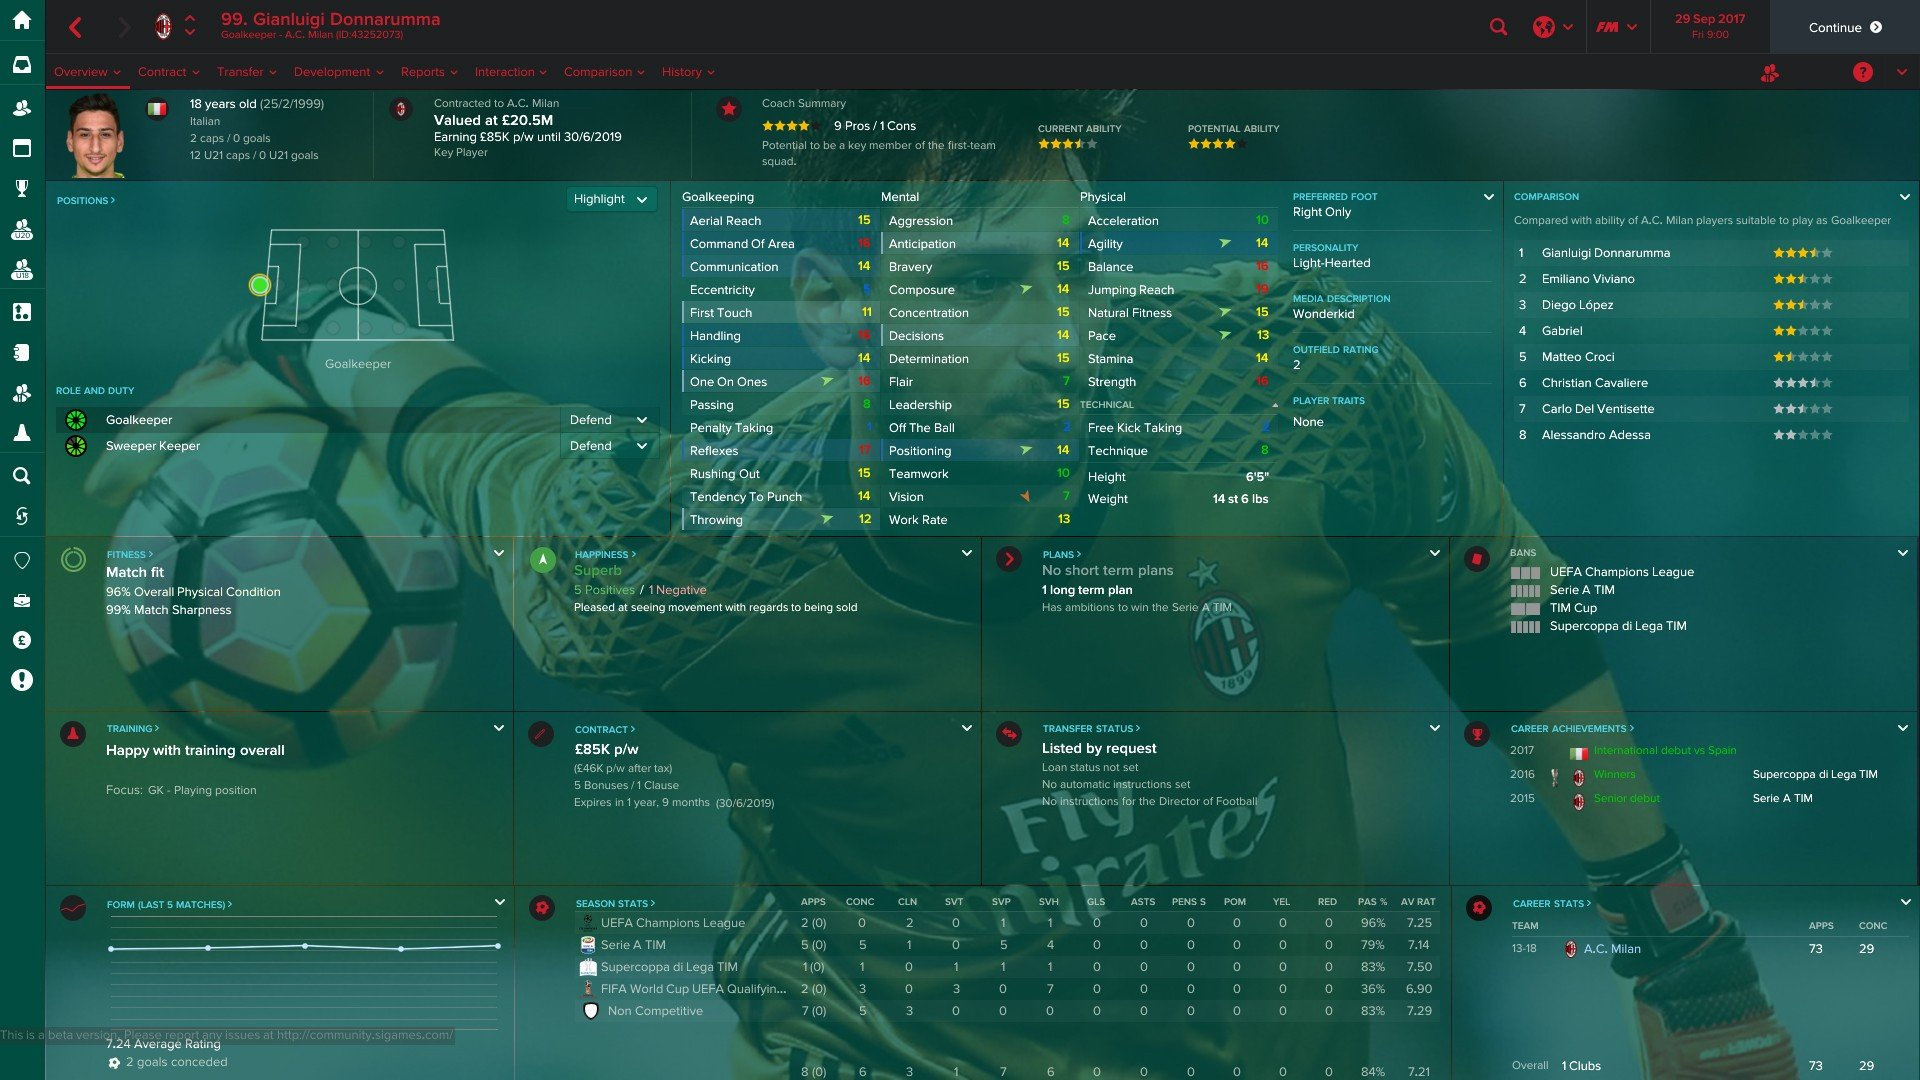 Football Manager Backgrounds Super Pack (FM2017) H2xtA